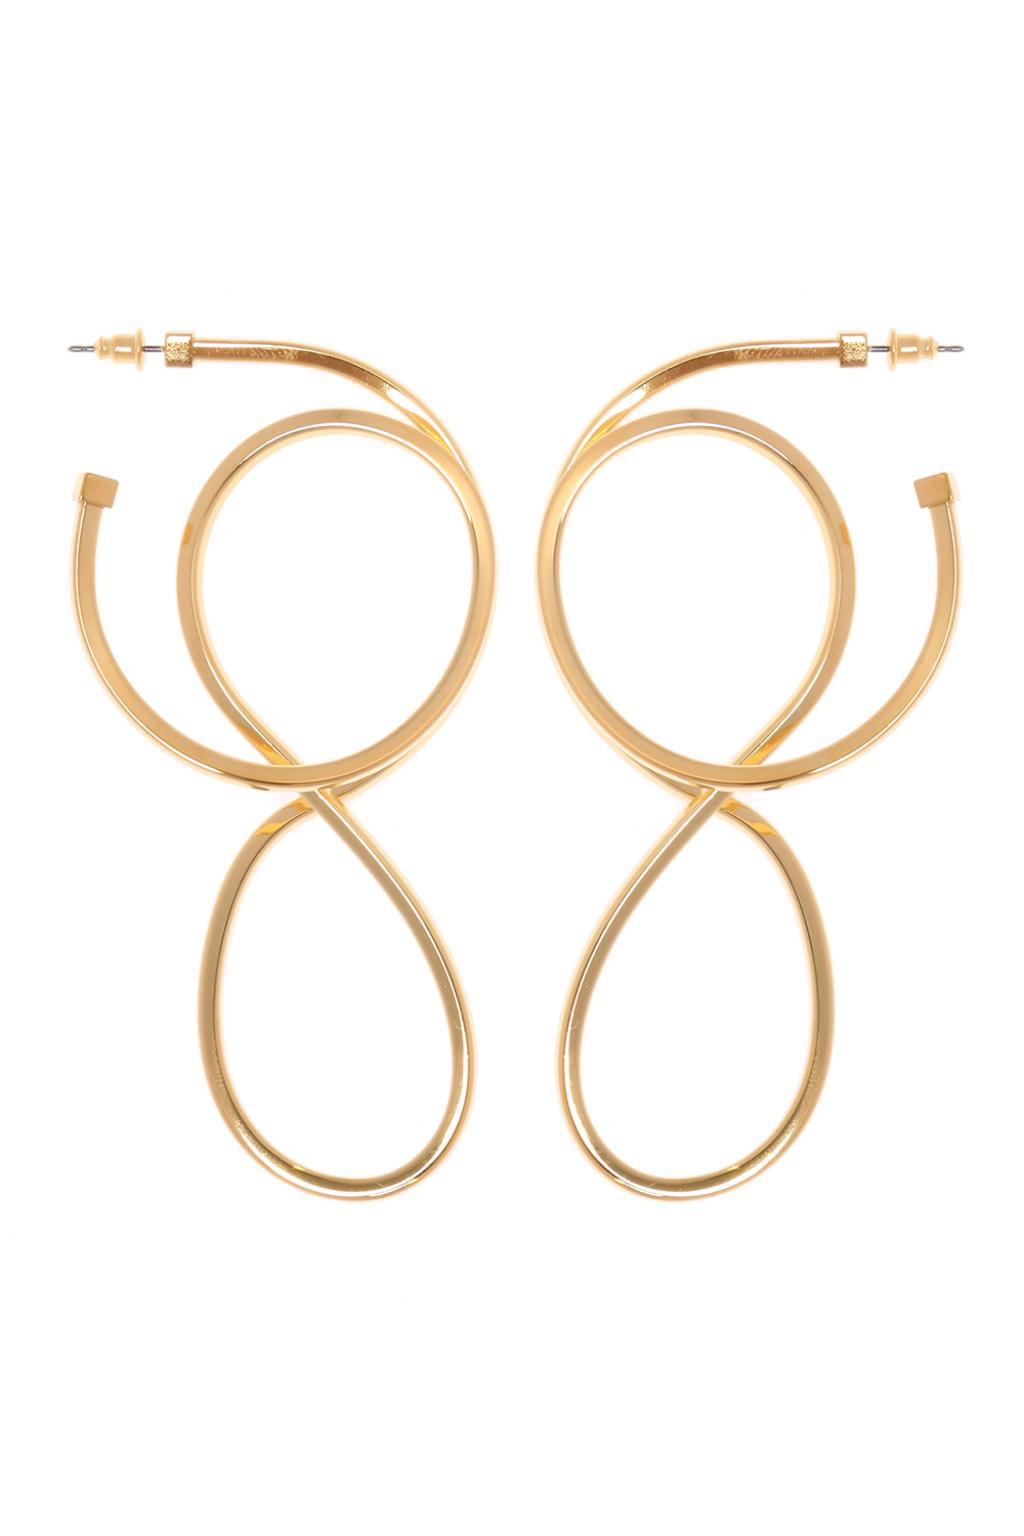 Circle Elastic Earrings - Metallic Balenciaga bUHJHMzkD